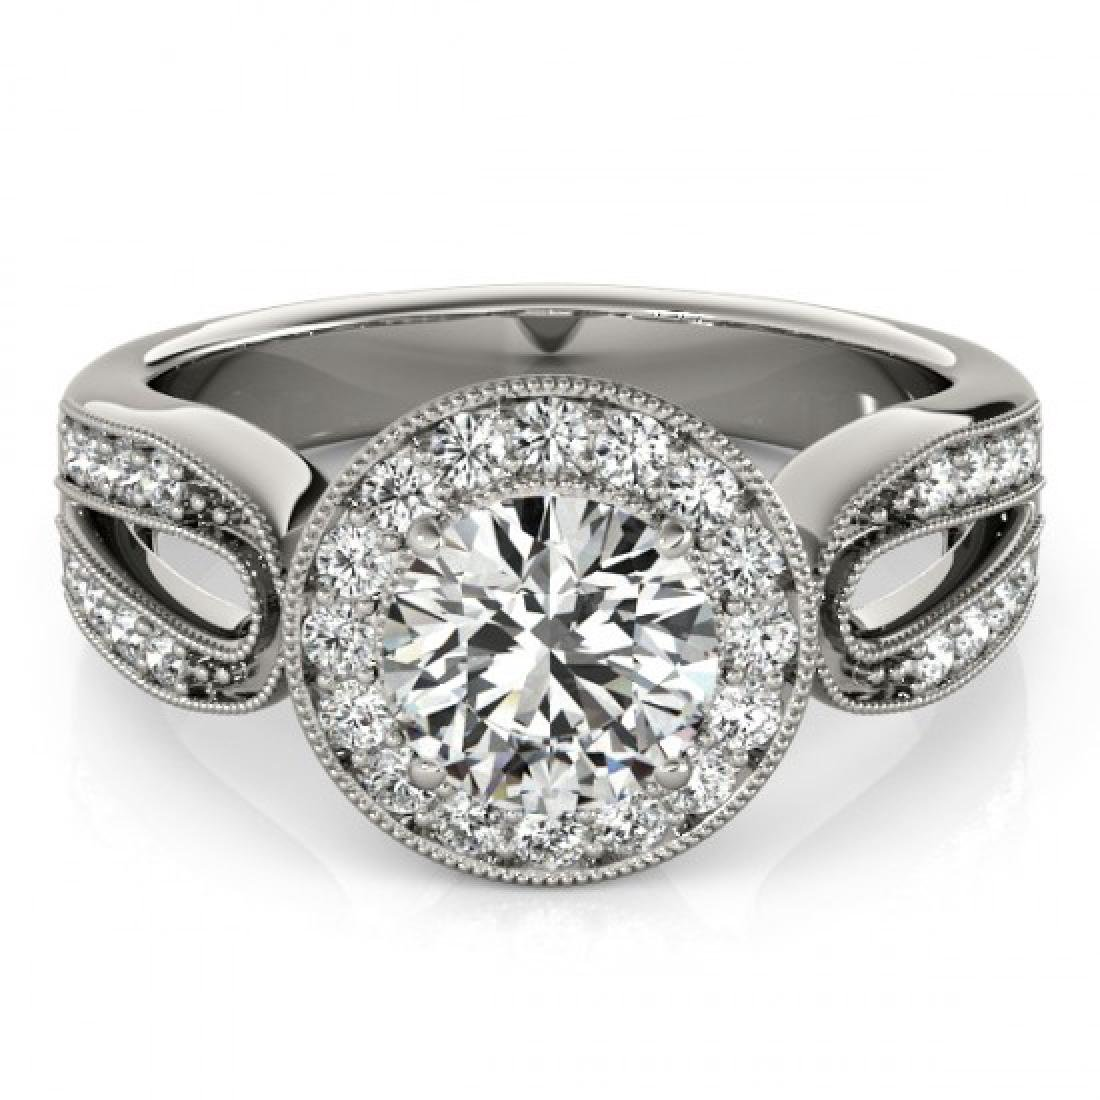 1.40 CTW Certified VS/SI Diamond Solitaire Halo Ring